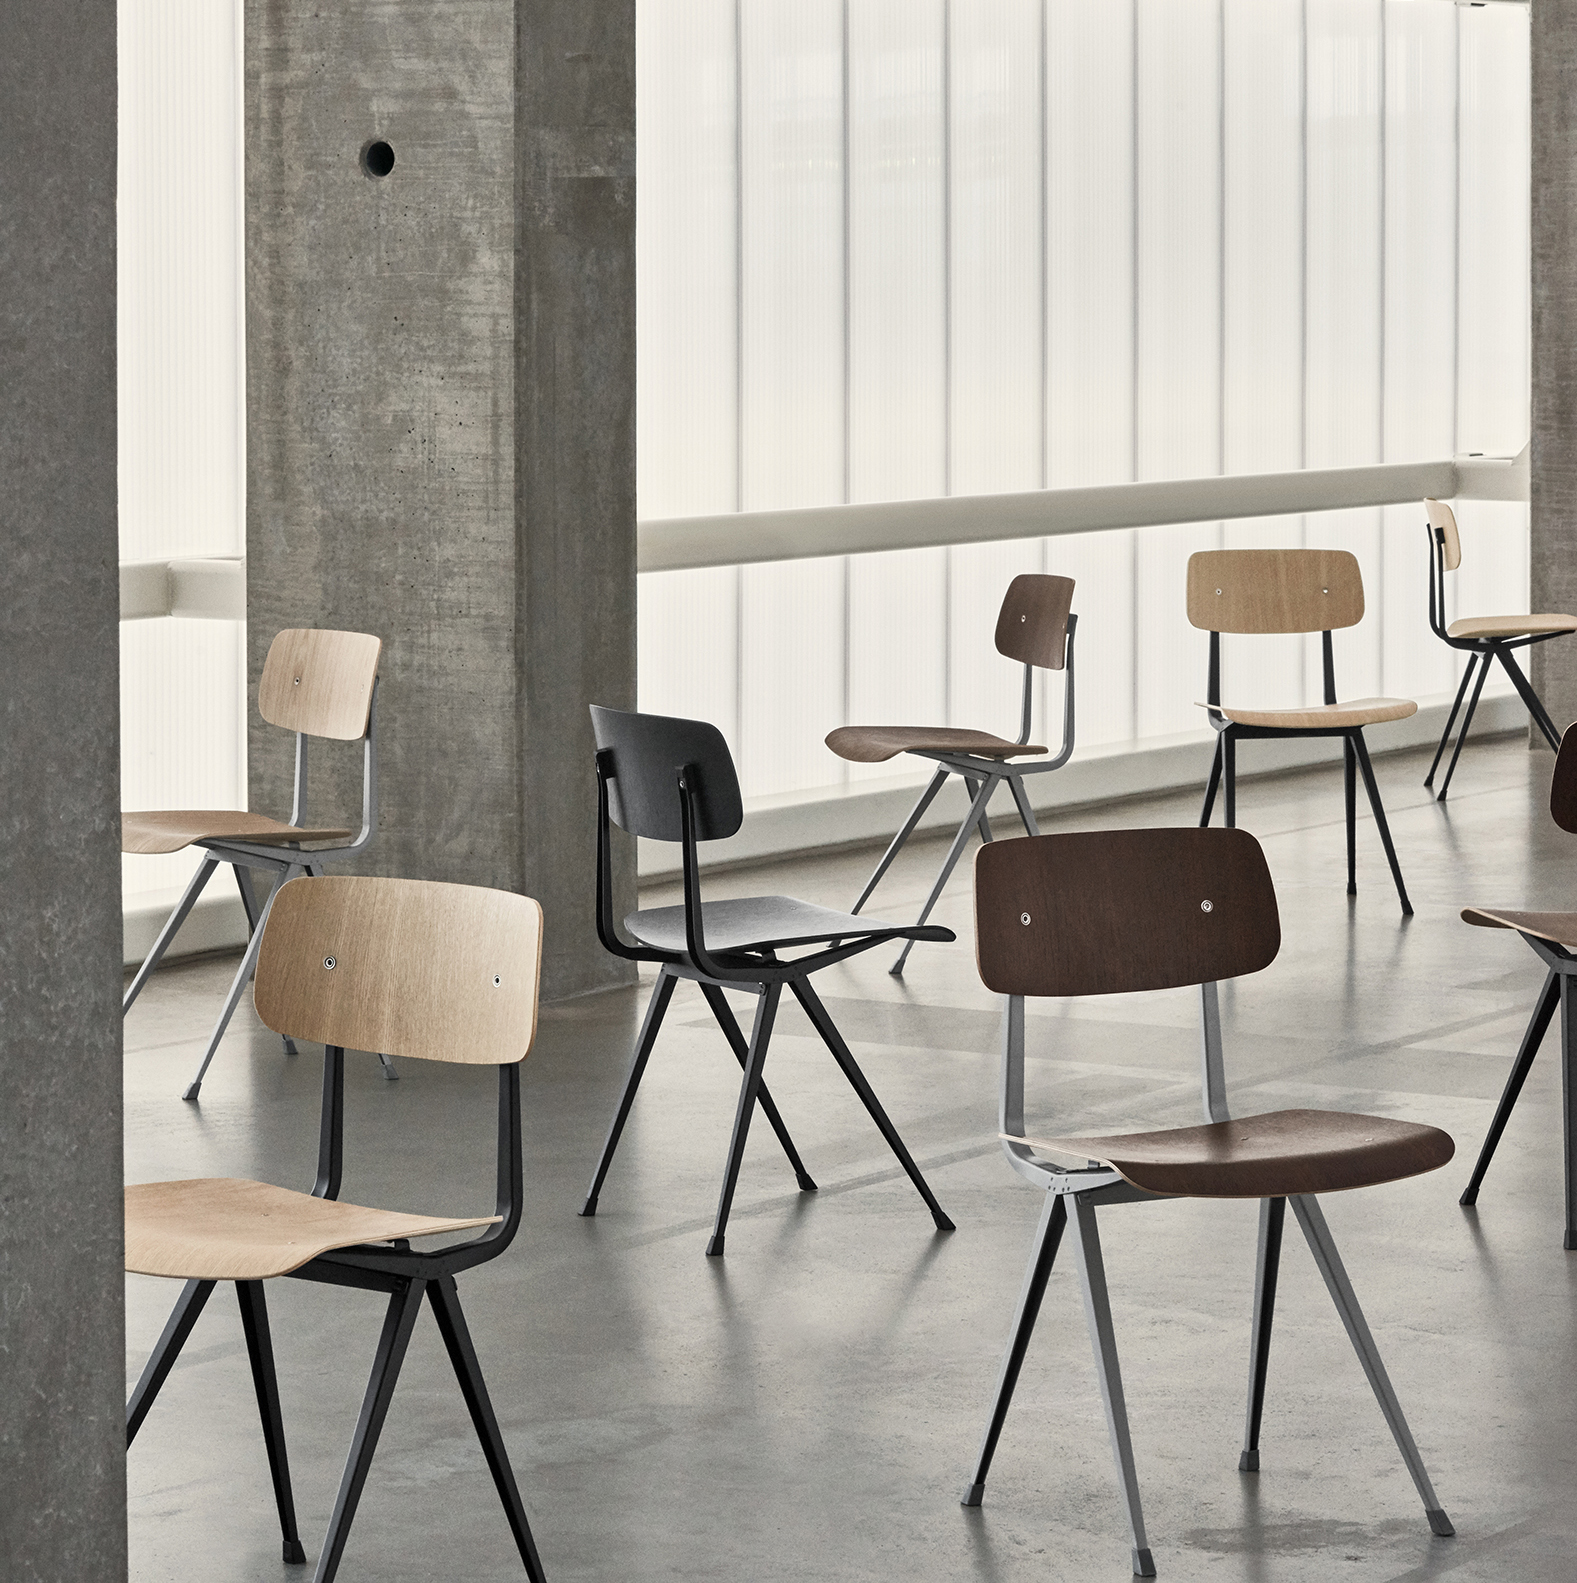 RESULT CHAIR & PYRAMID COLLECTION BY FRISO KRAMER AND WIM RIETVELD